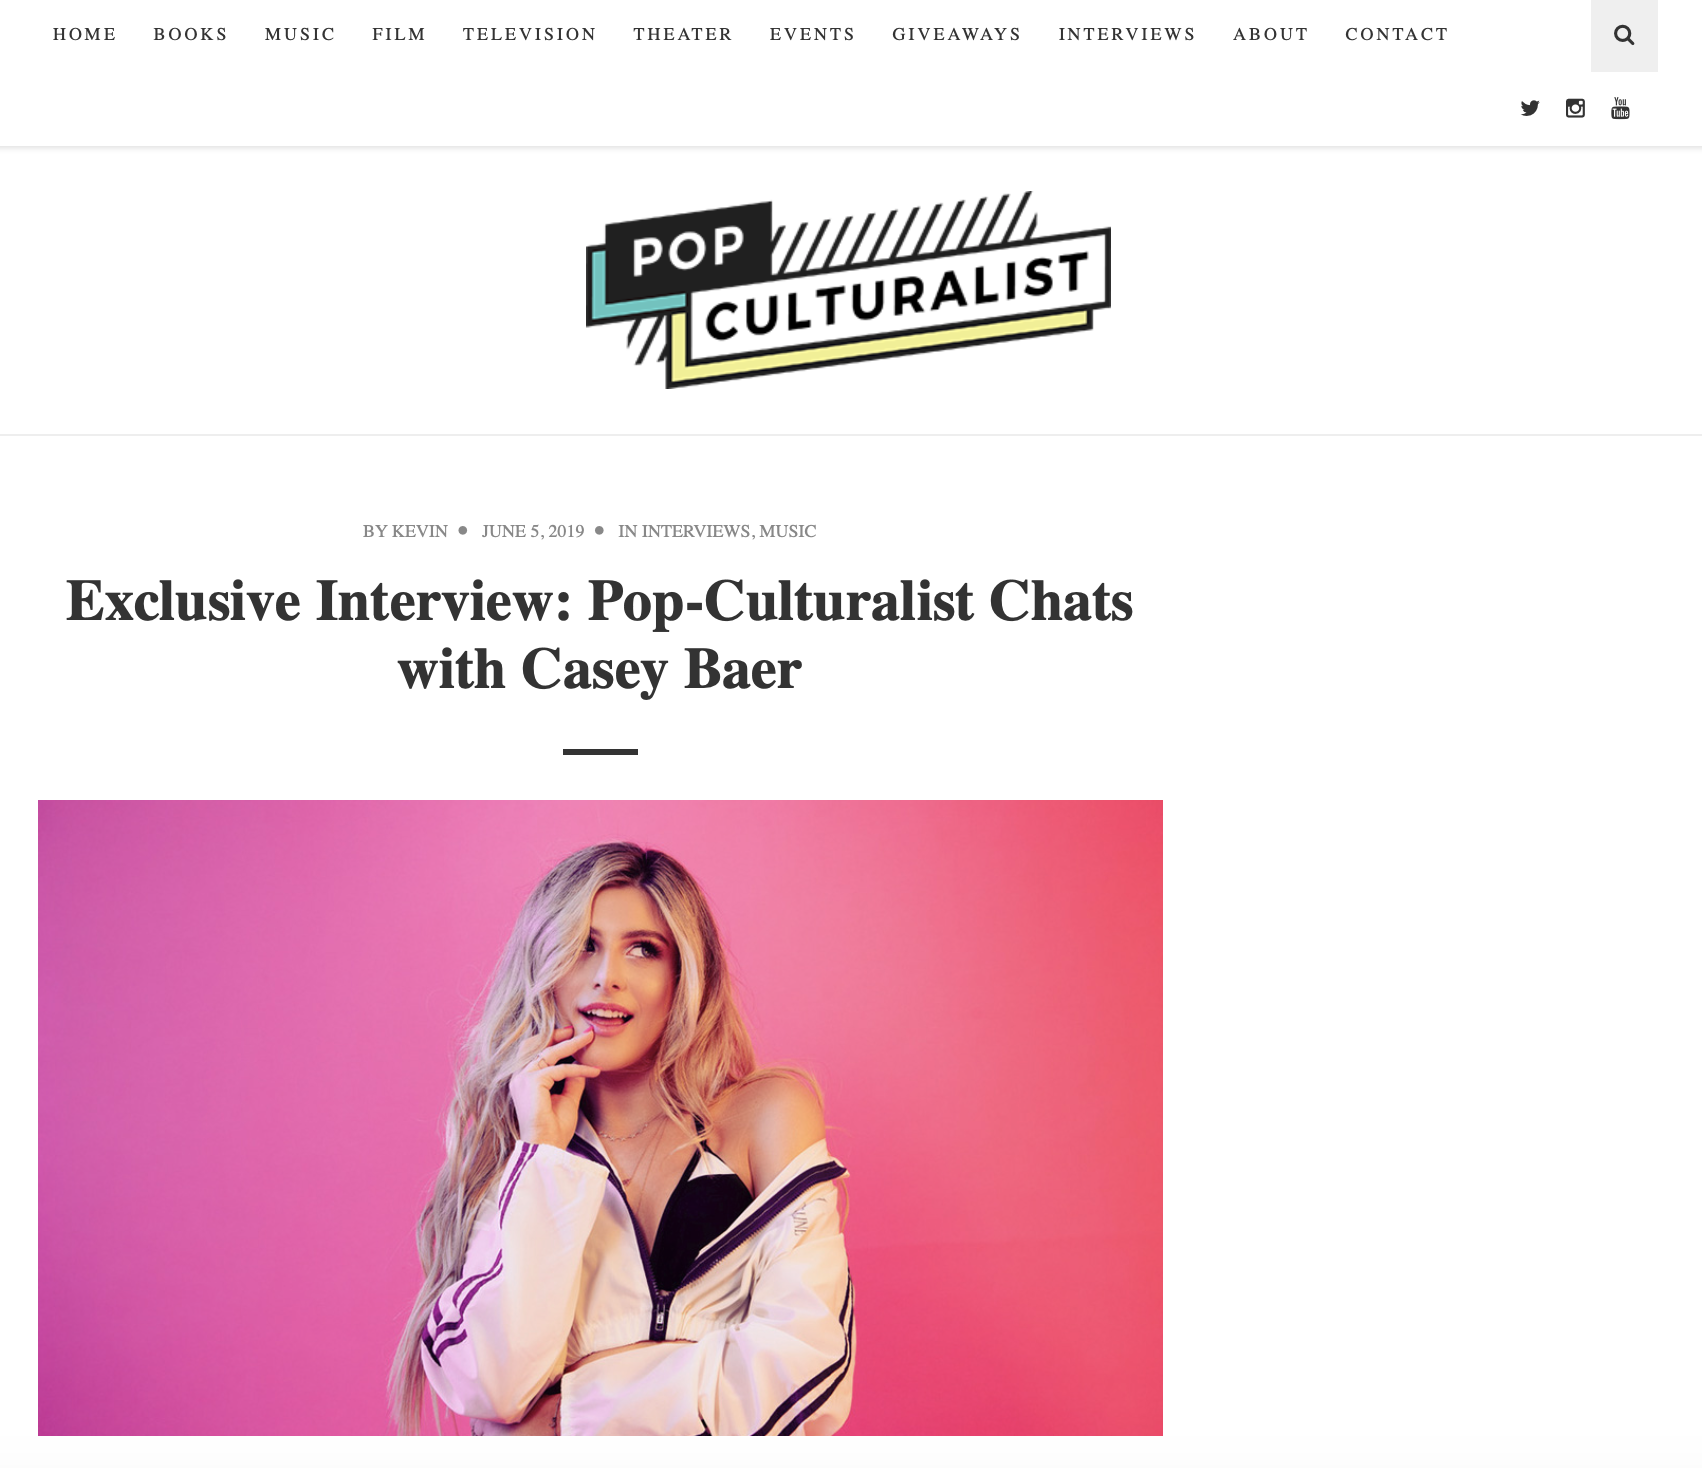 Exclusive Interview: Pop-Culturalist Chats with Casey Baer - I've been obsessed with music for as long as I can remember. It's always been a part of my life and what I do.